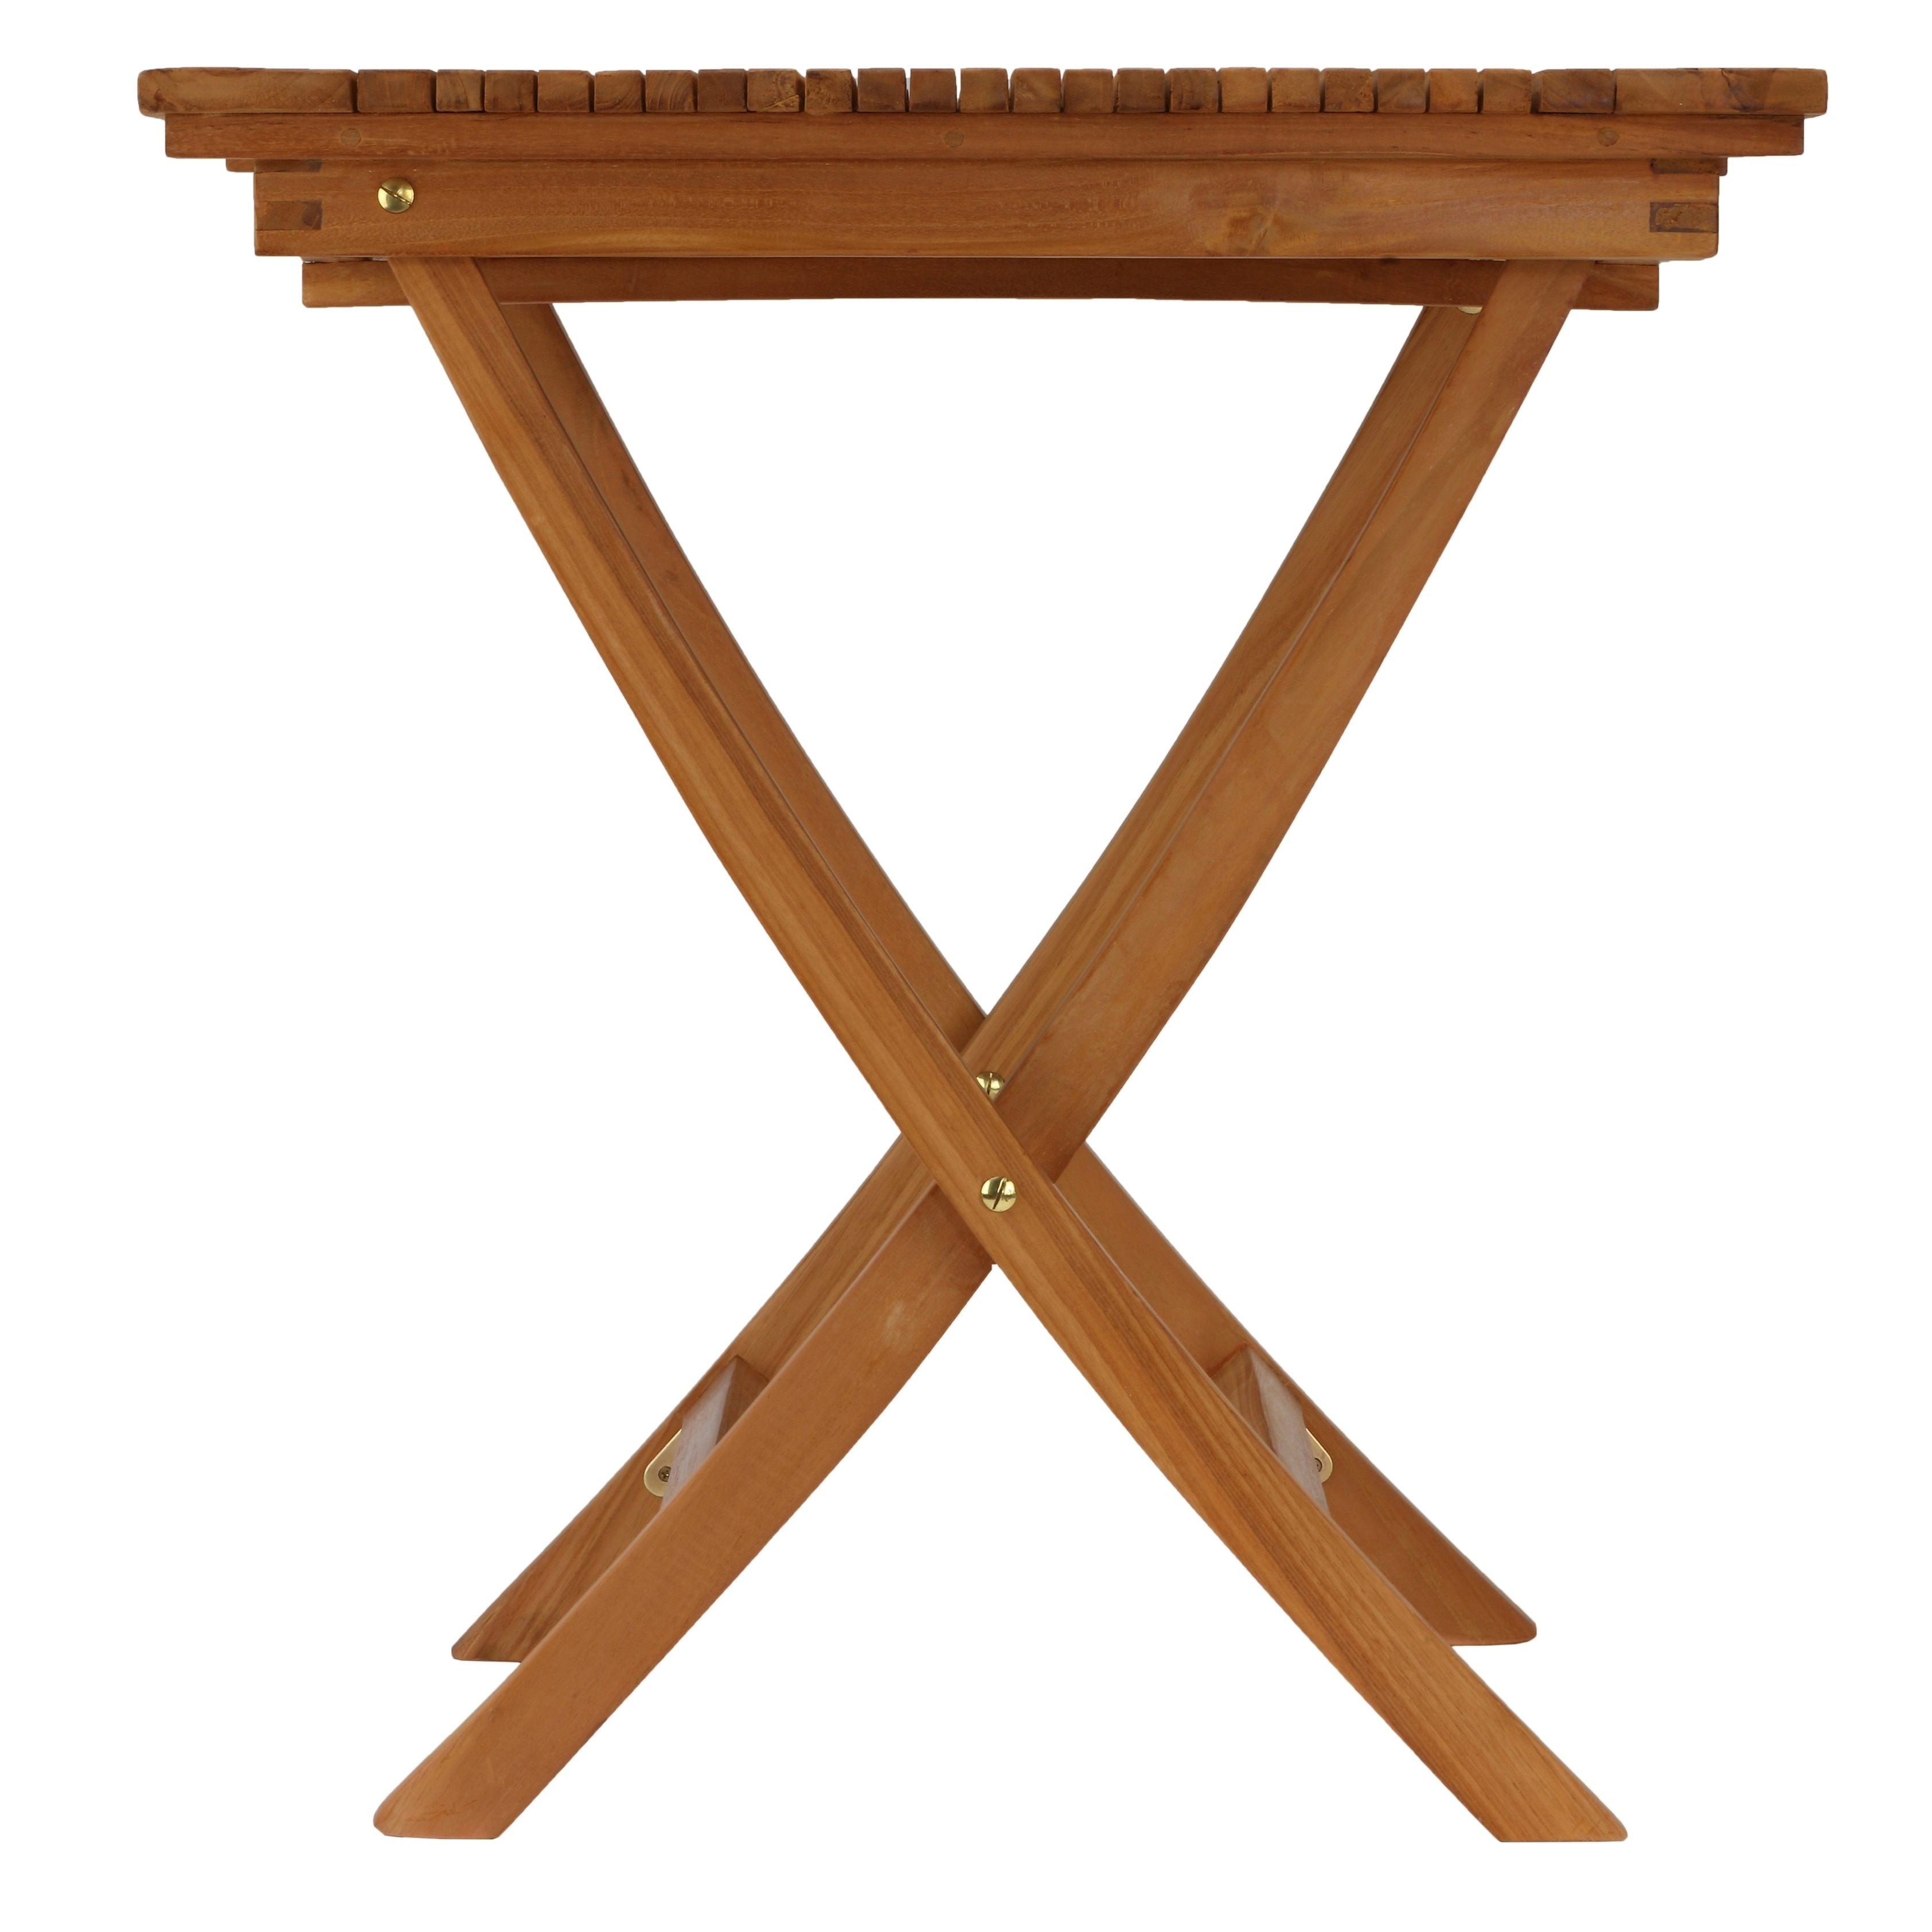 Bare Decor Helene Outdoor Teak Folding Dining Table 28 Square 27 5 W X L 29 75 H Free Shipping Today 22730722